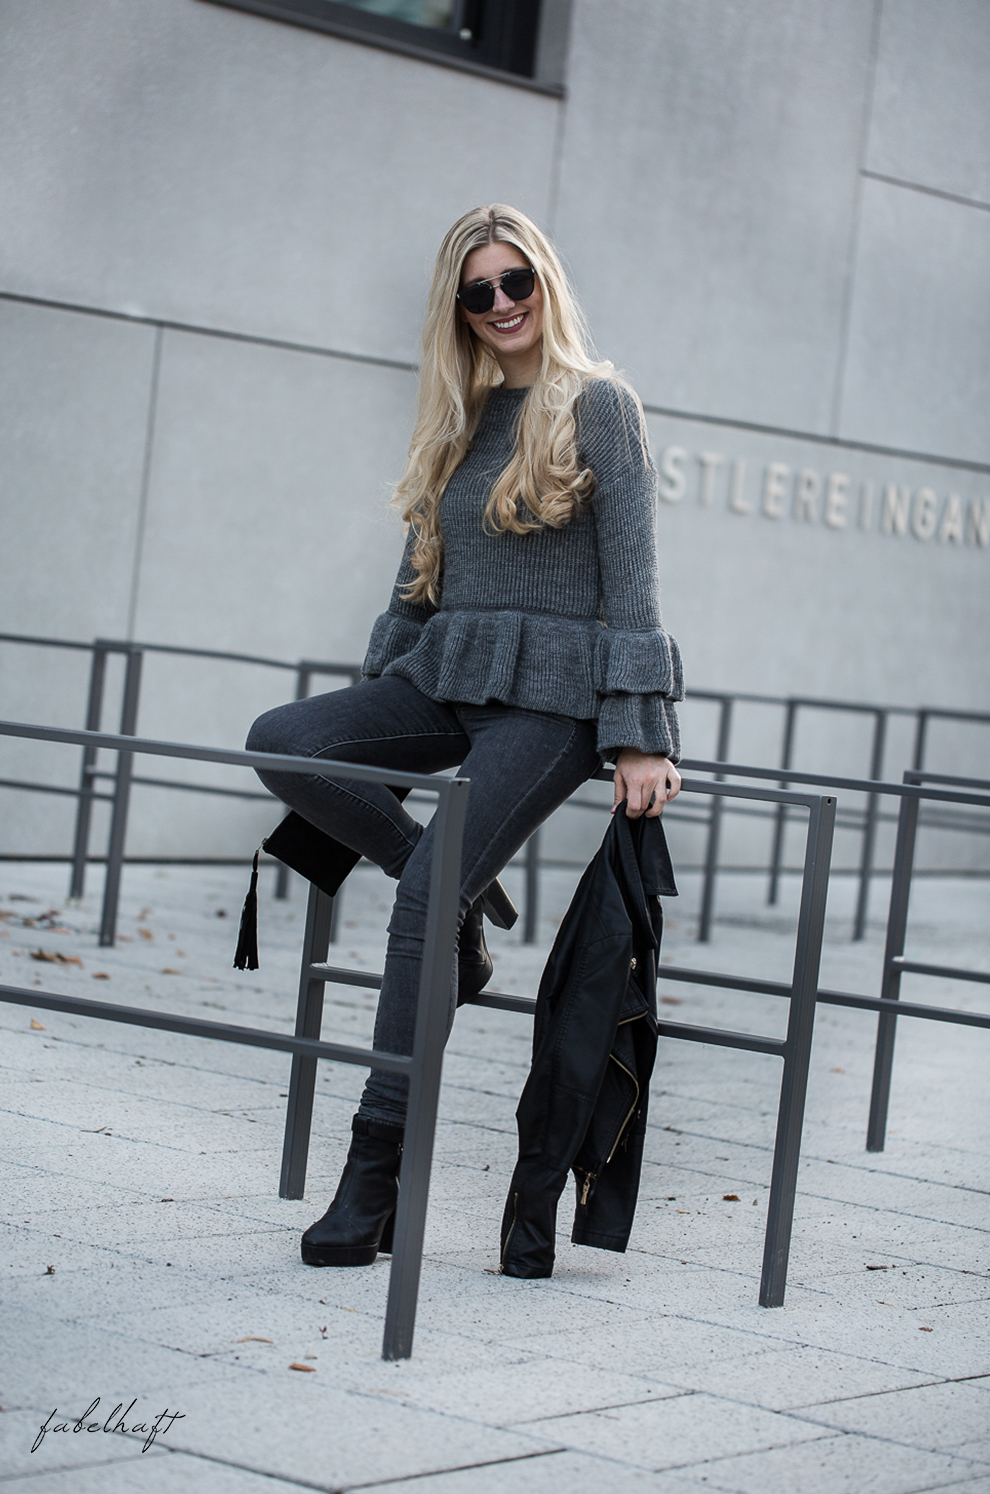 Volants Herbst Pullover Strick Cunky Jeans Grau Herbstoutfit Trend 2017 Rüschen Ruffle Steampunk Blond Beachhair Loose Waves 8